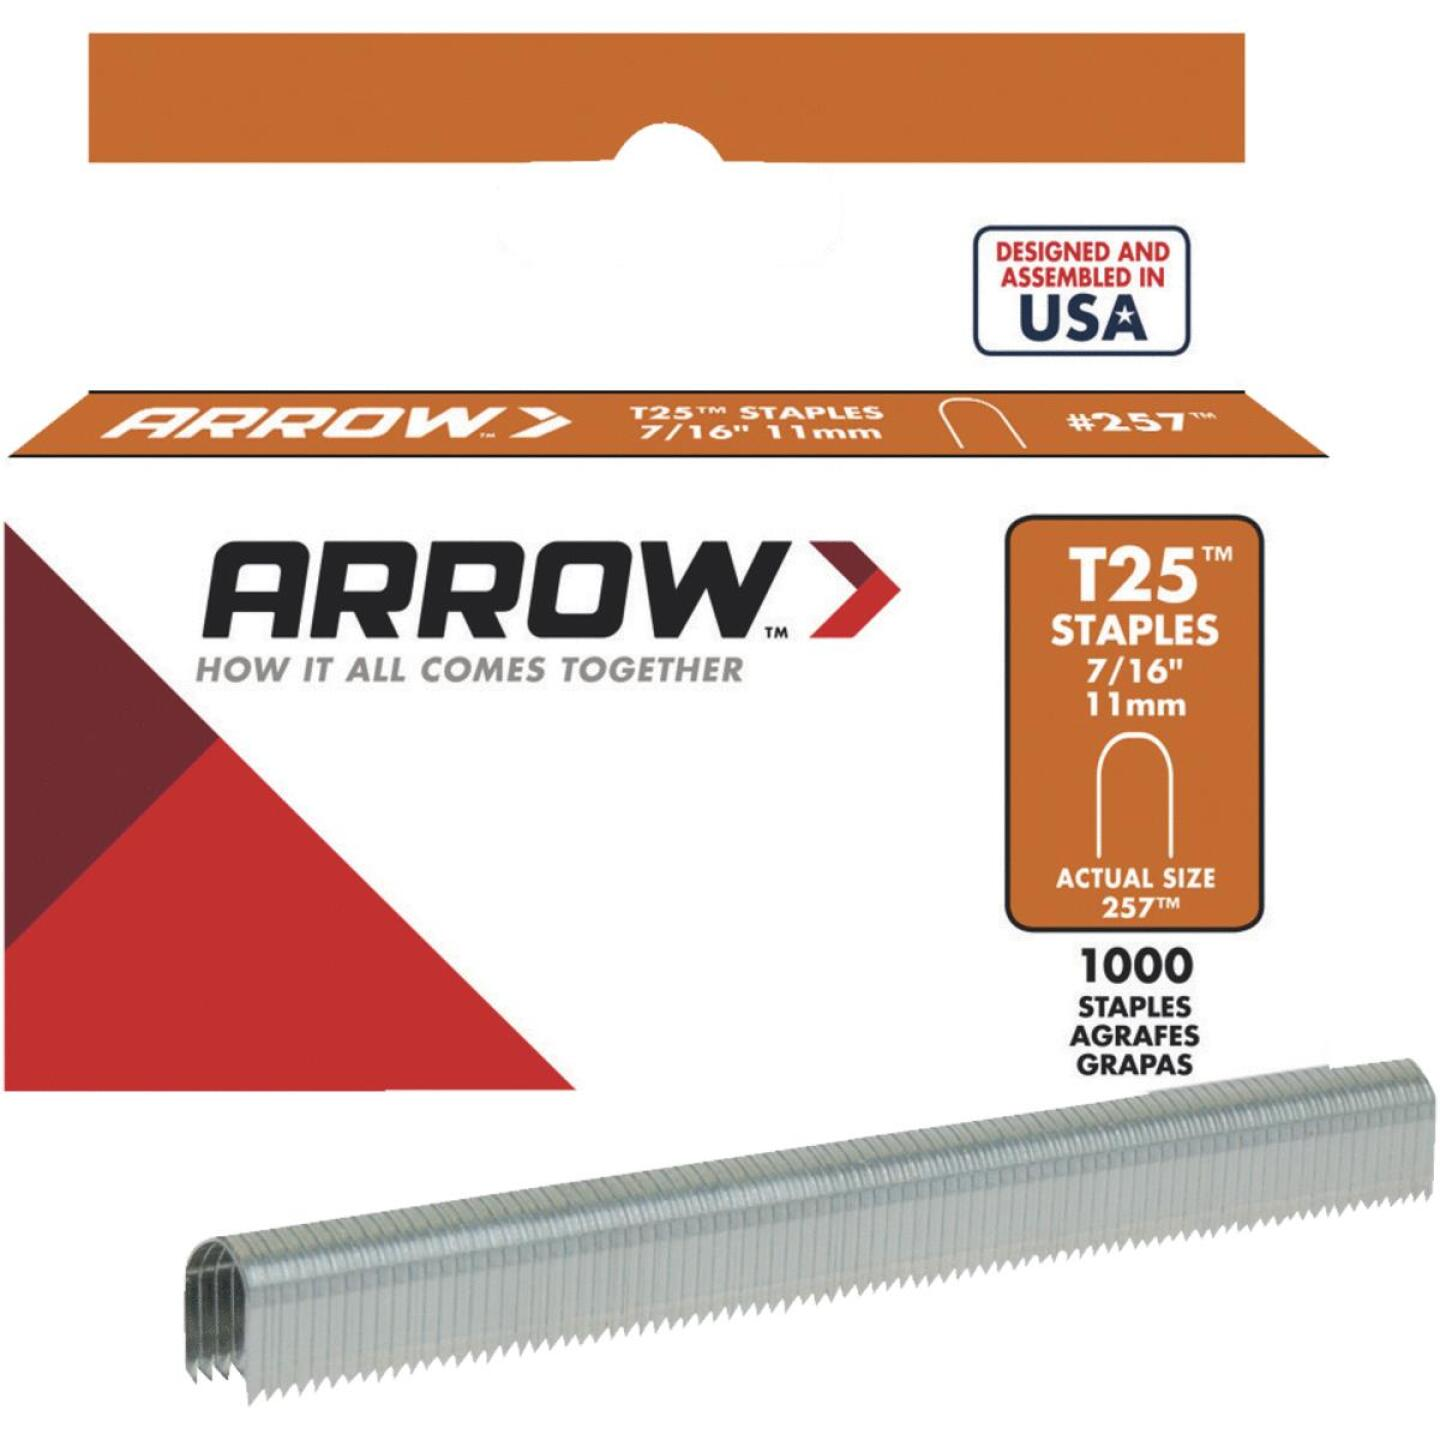 Arrow T25 Round Crown Cable Staple, 7/16 In. (1100-Pack) Image 1